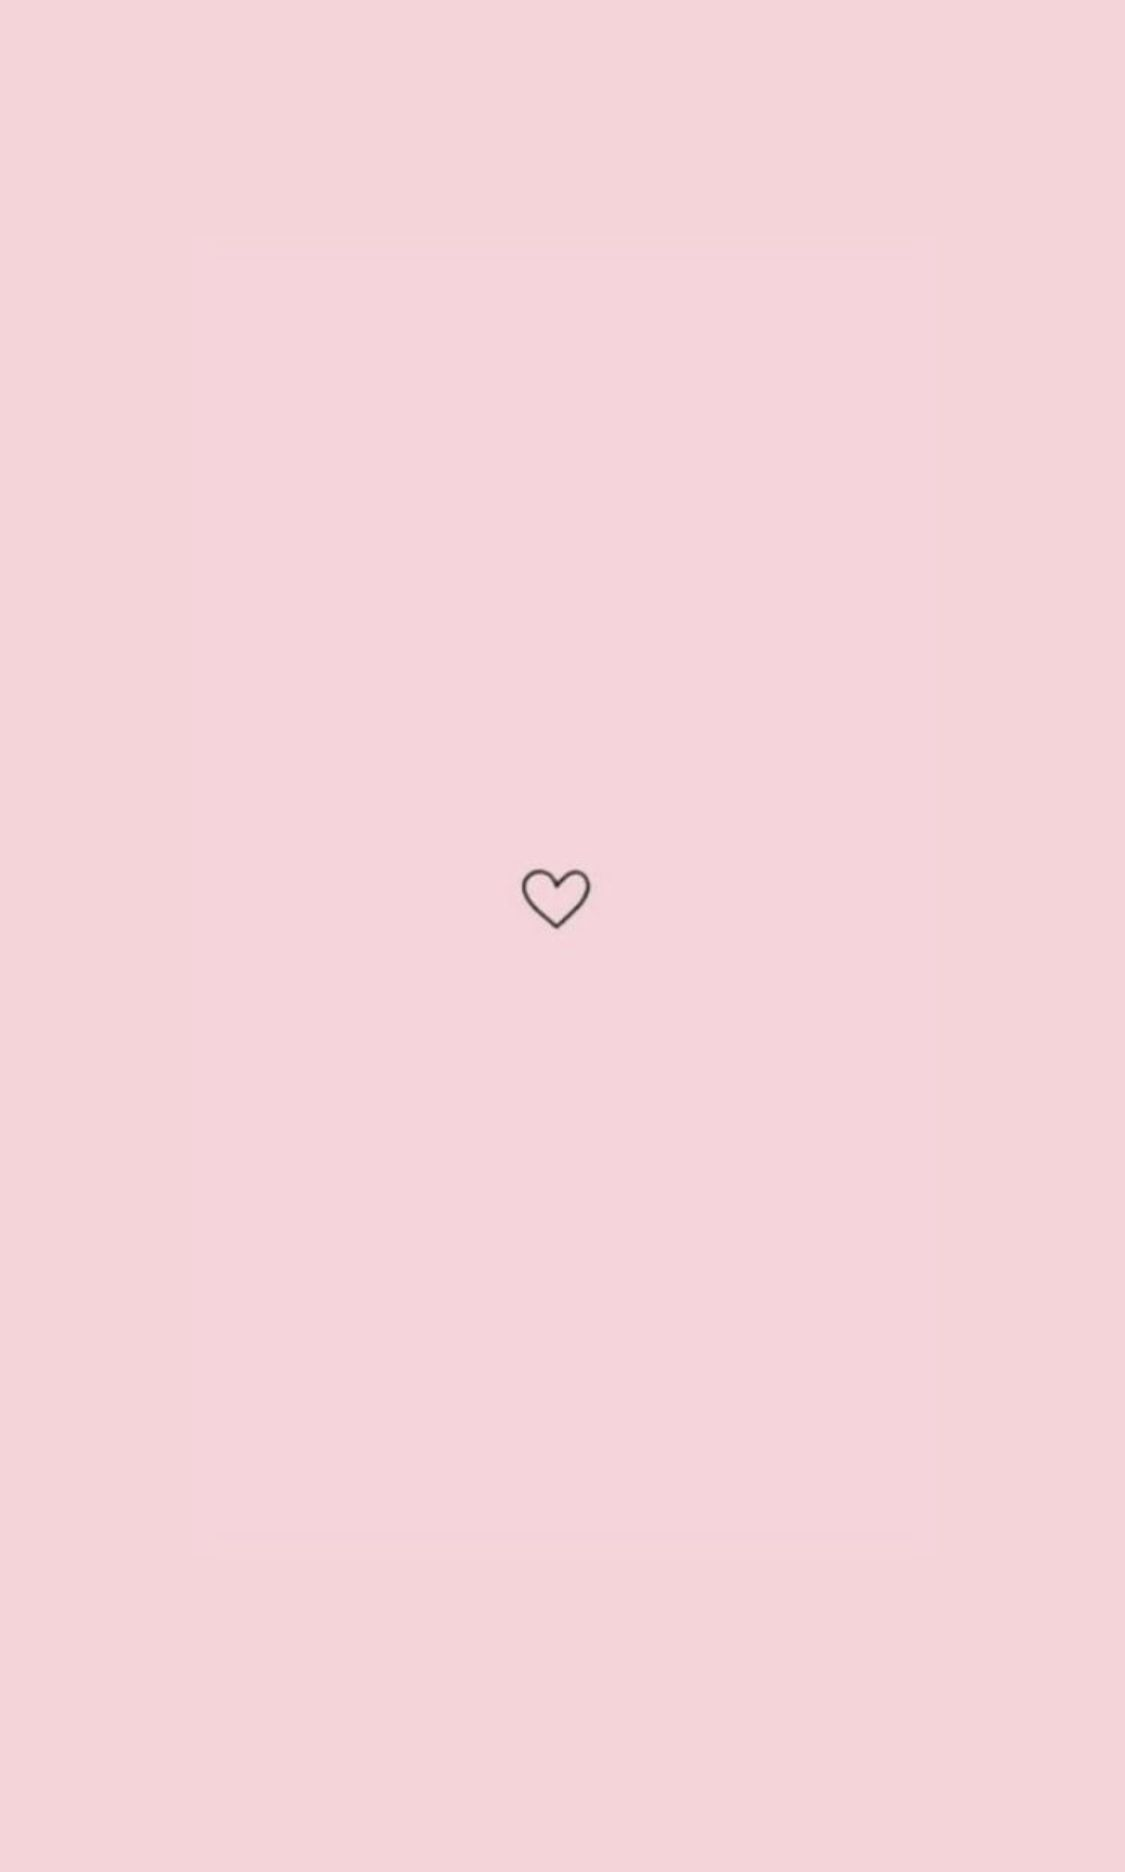 Light Pink Iphone Wallpapers Top Free Light Pink Iphone Backgrounds Wallpaperaccess